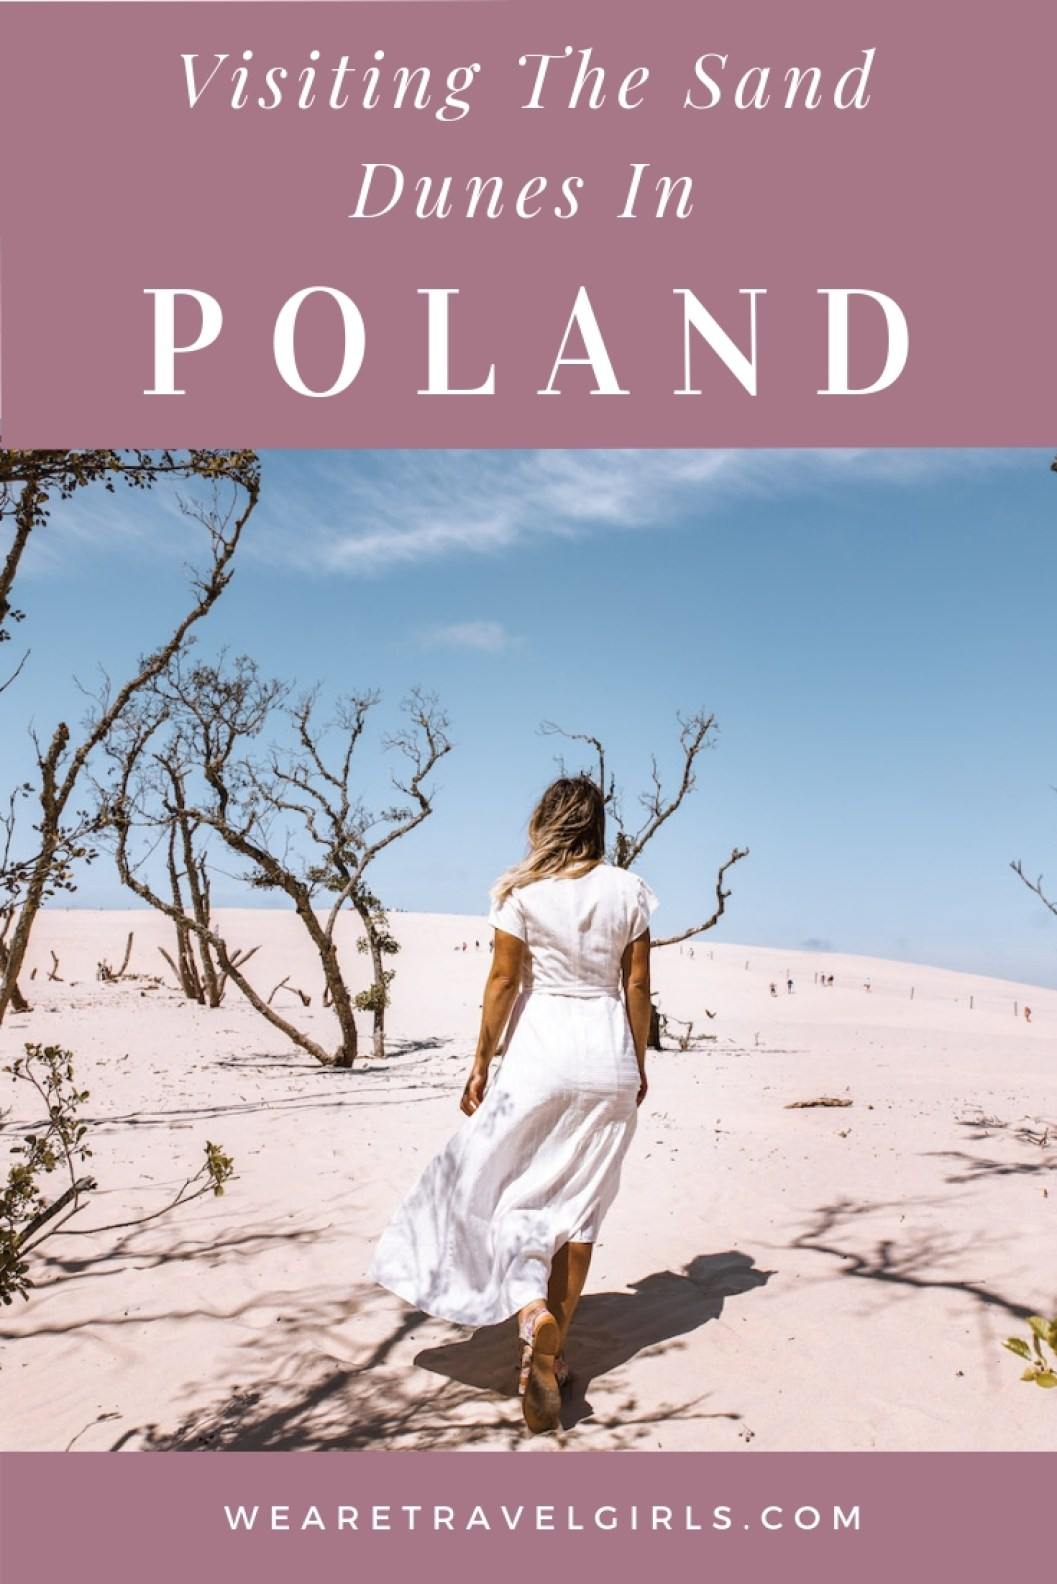 Visiting The Sand Dunes In Poland